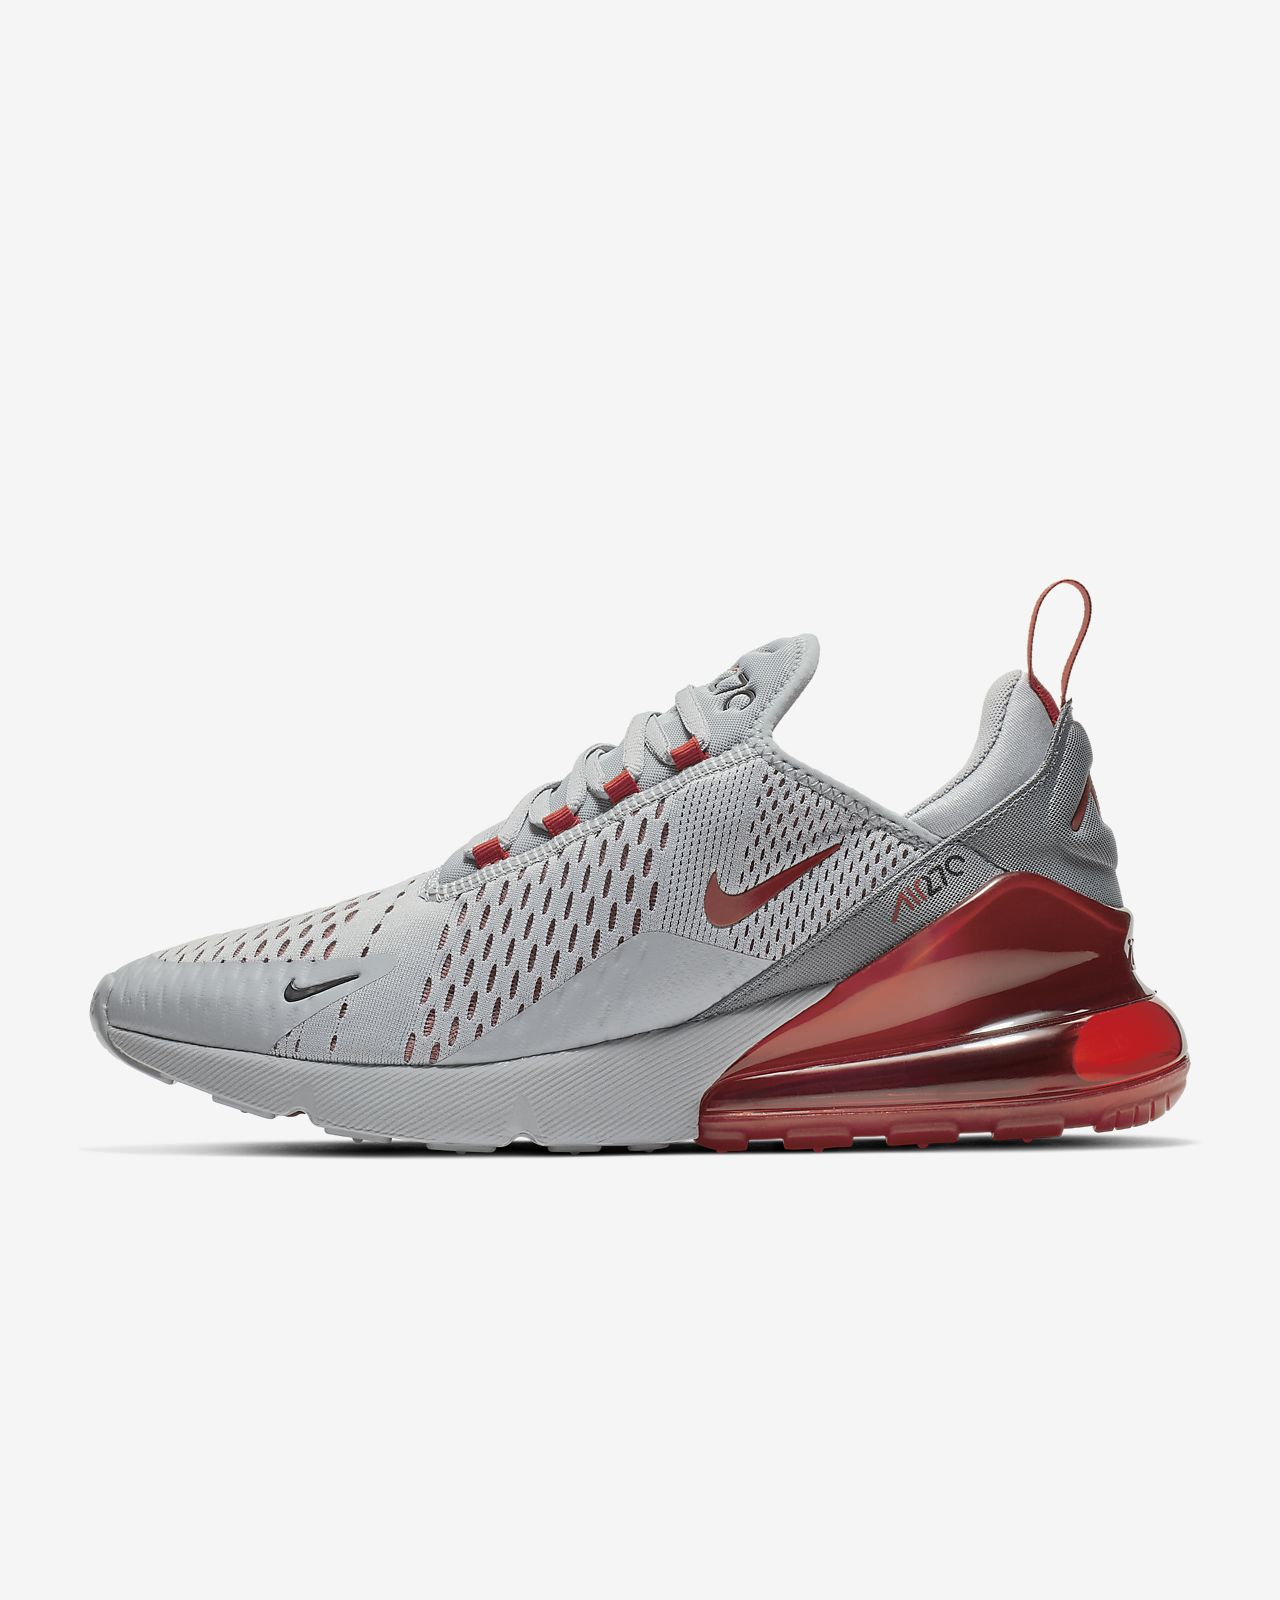 meet b22d8 58fc1 Men s Shoe. Nike Air Max 270